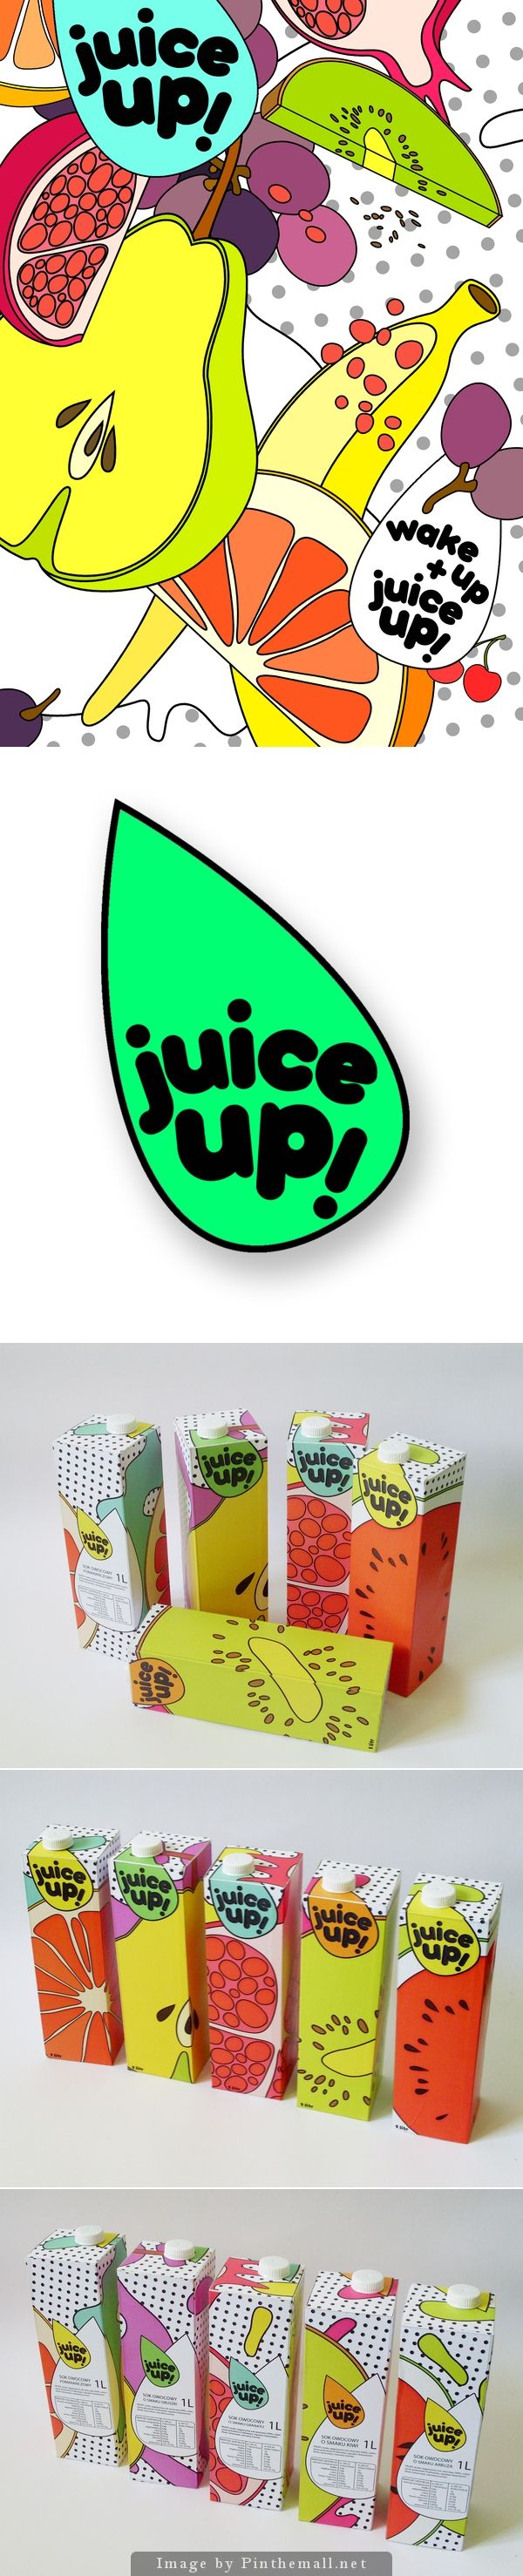 Let's have some juice packaging curated by Packaging Diva PD